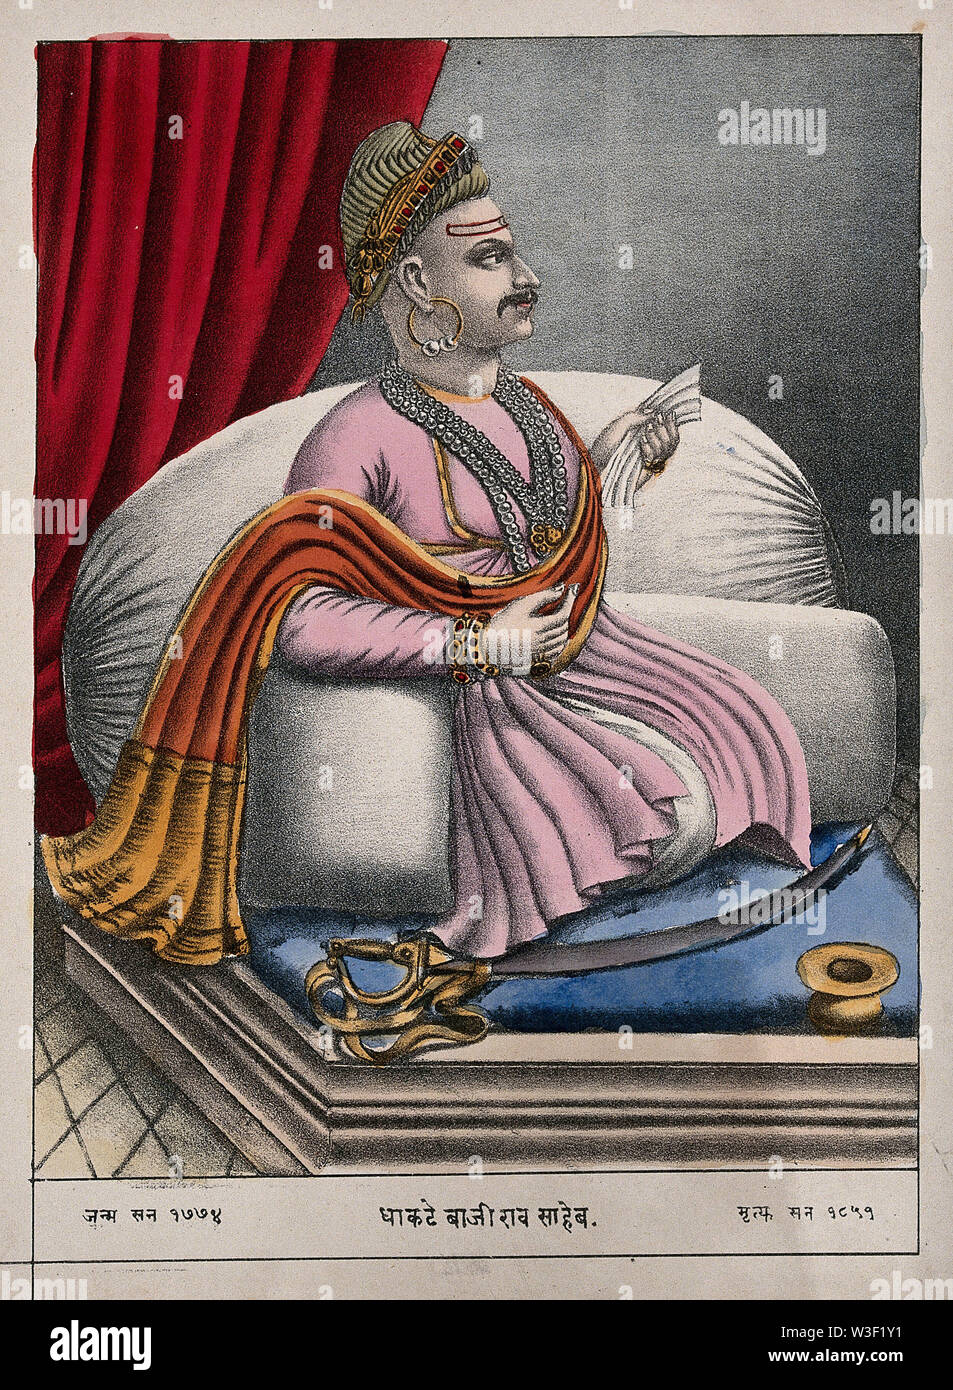 Dhakate Bajirava Saheb. Coloured lithograph, 1888. - Stock Image